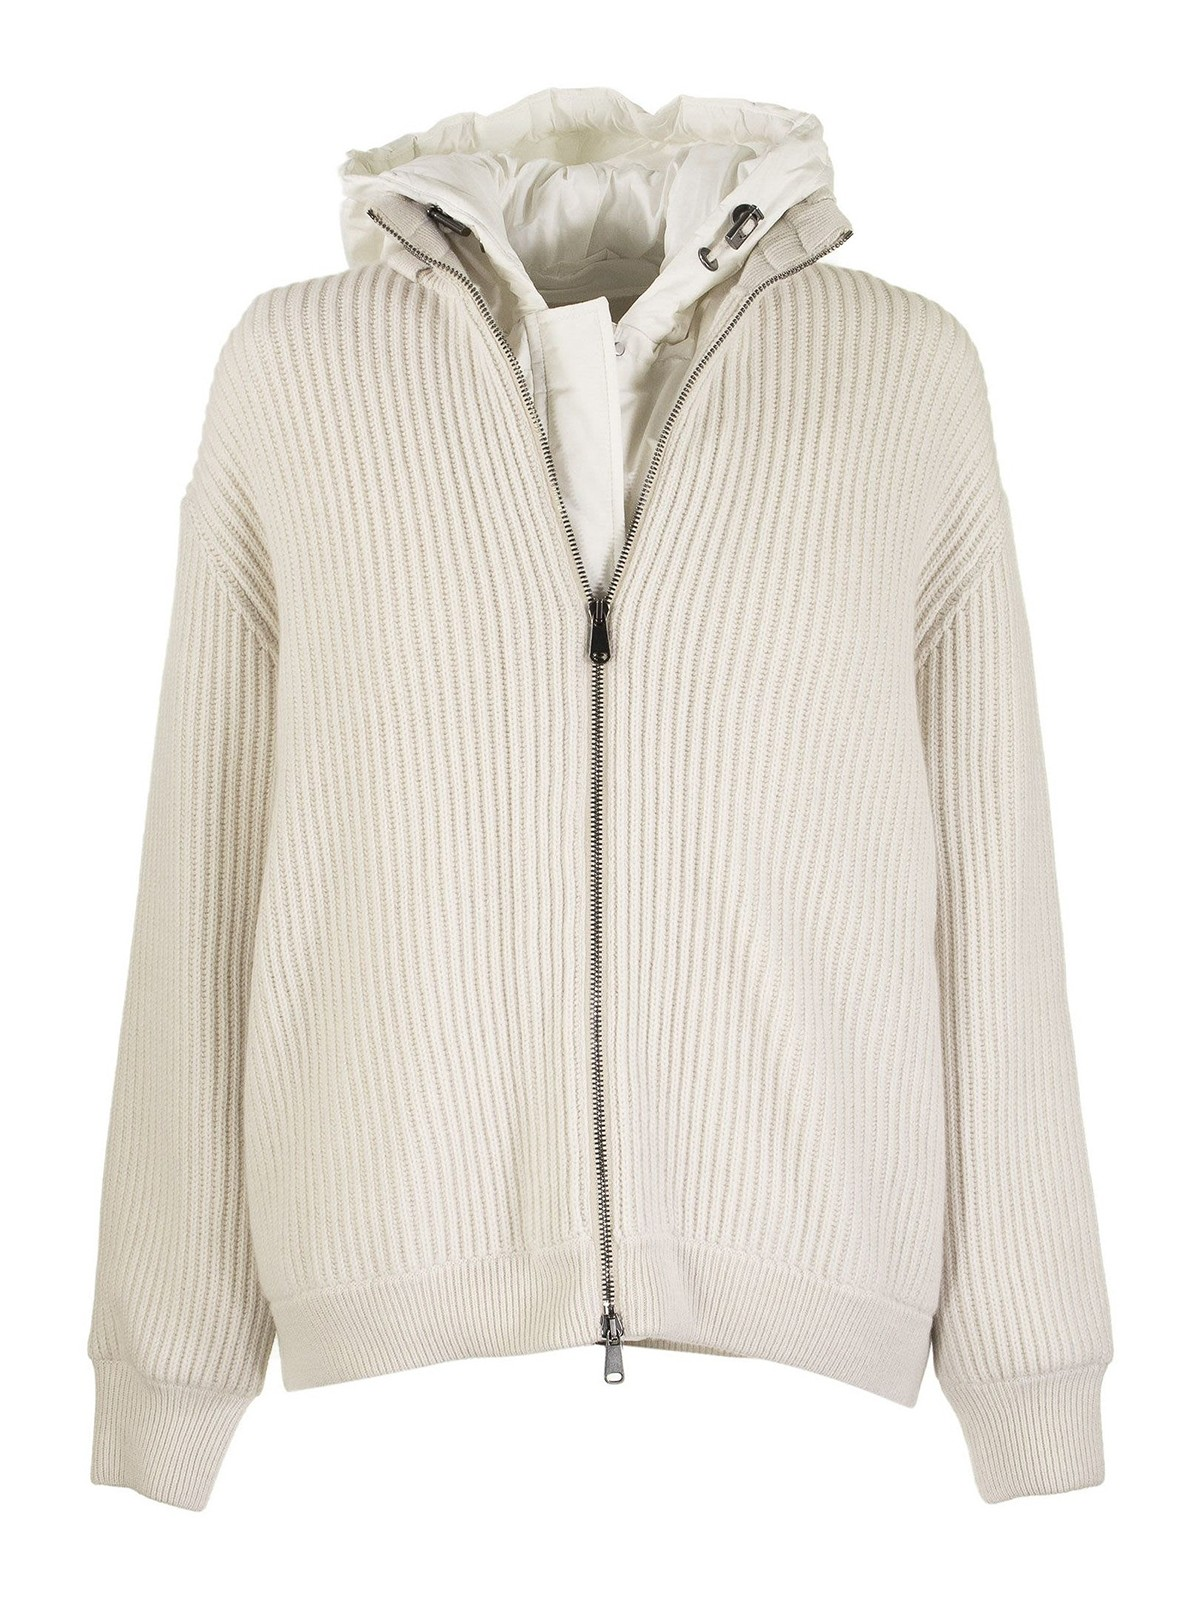 Brunello Cucinelli TWO-LAYERED CASHMERE JACKET